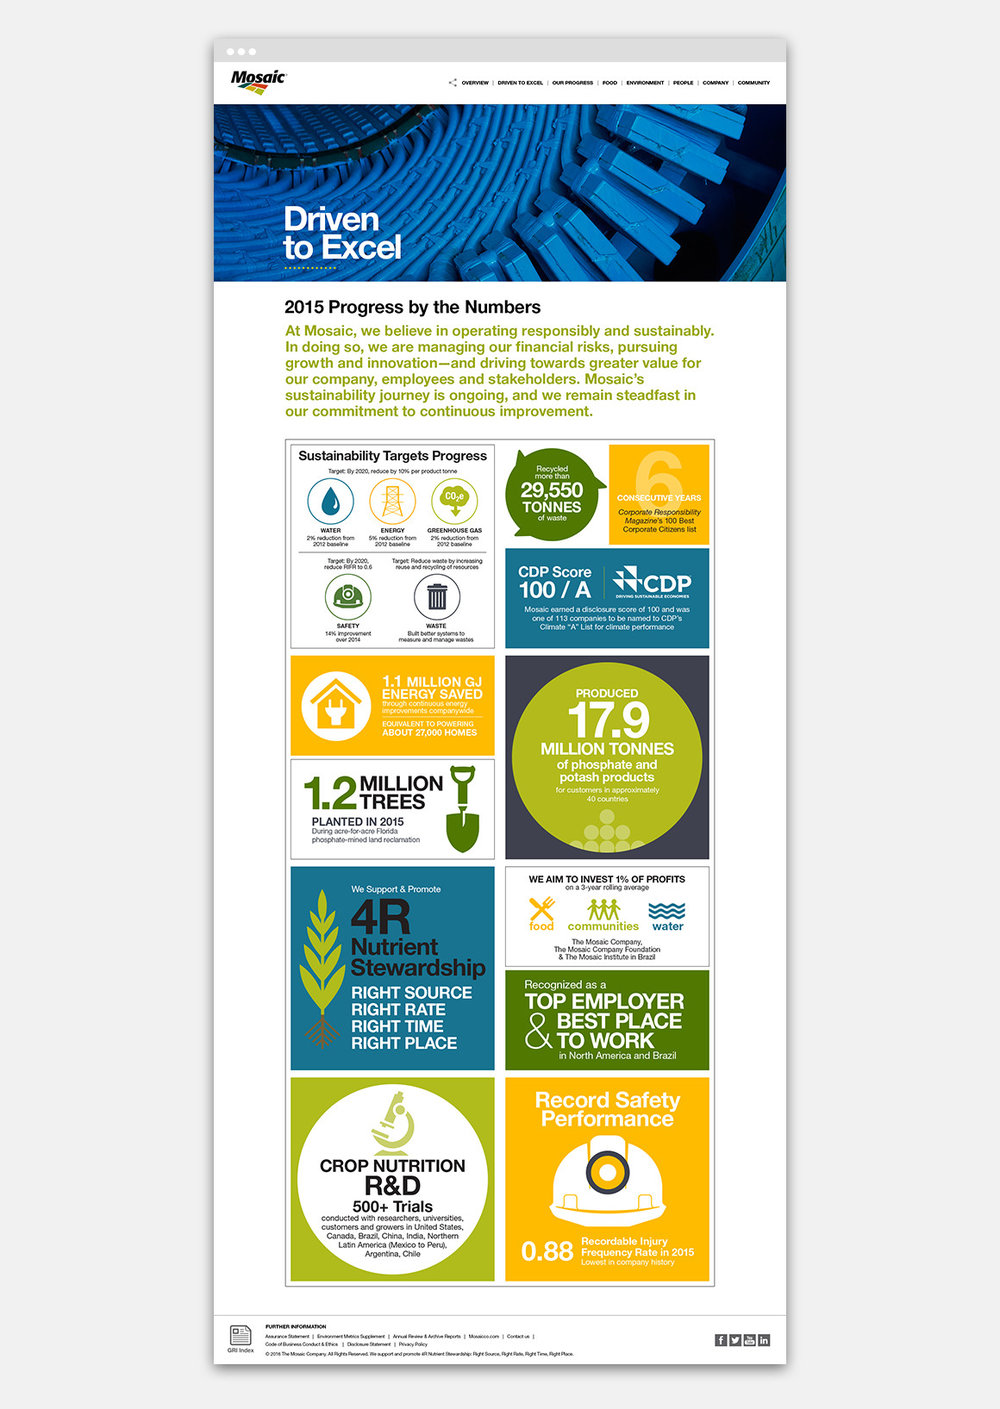 Just the facts.  An infographic shows Mosaic's sustainability leadership and key reporting metrics.